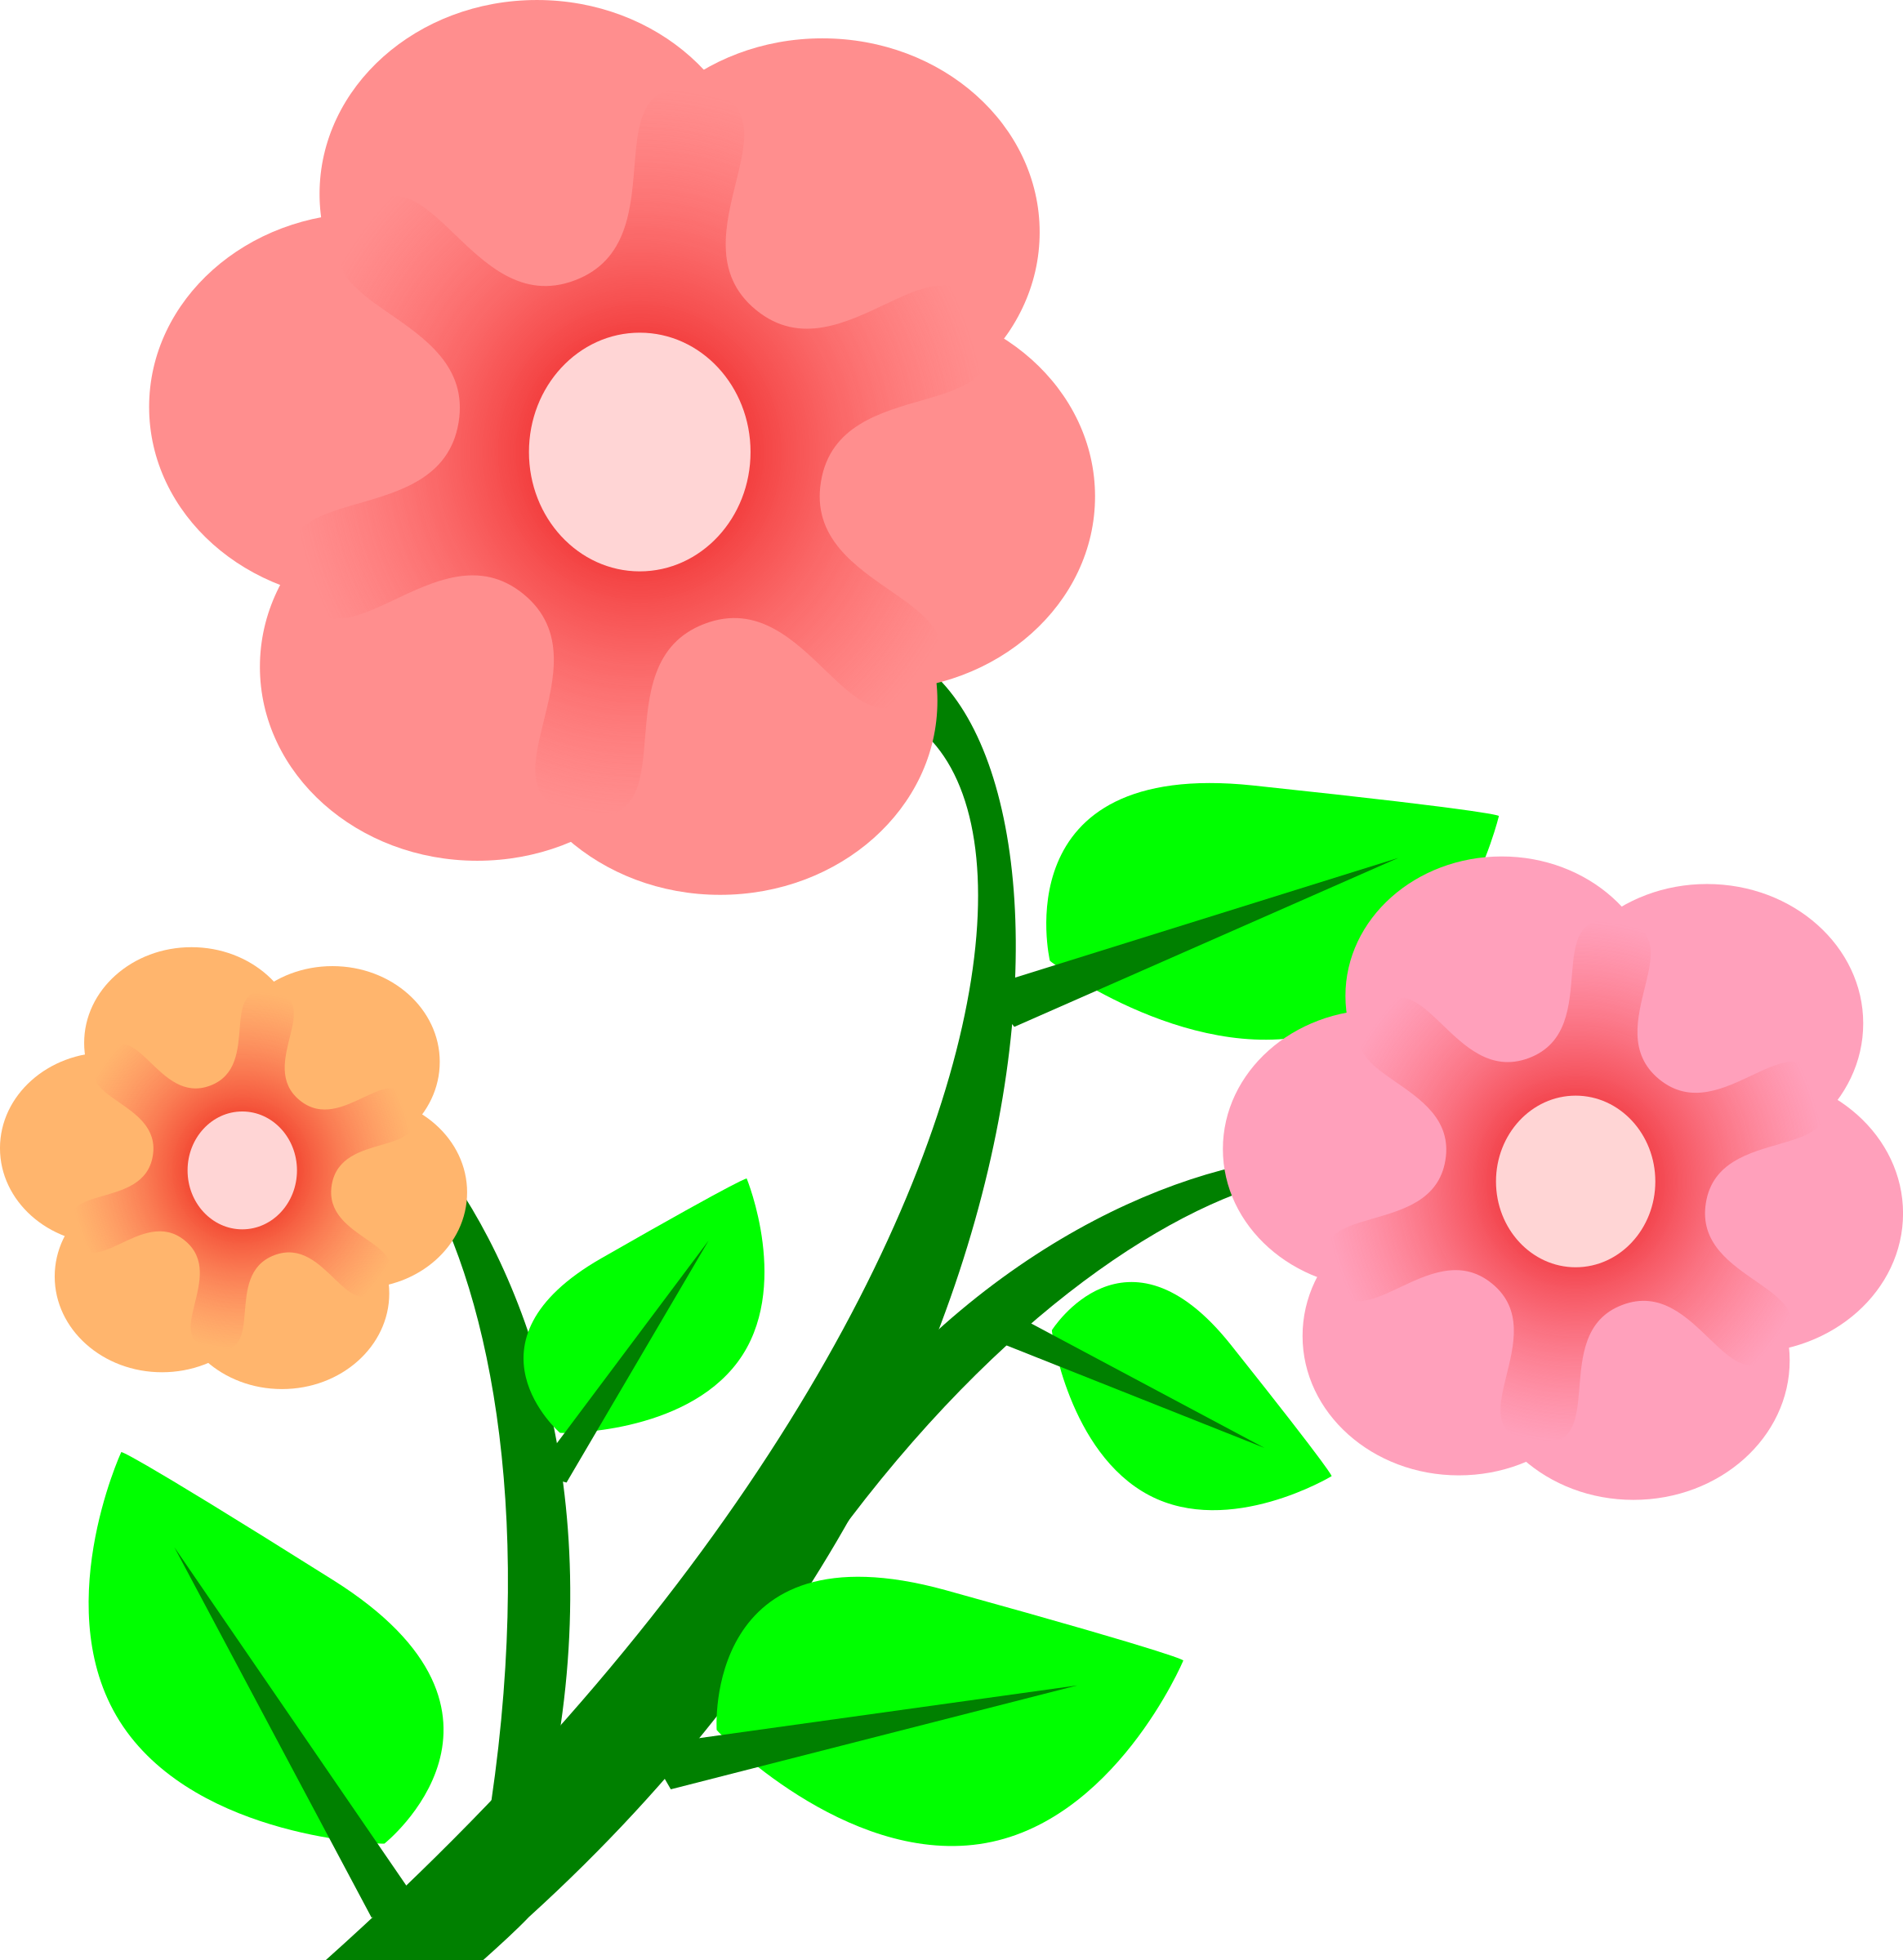 free flower clipart for kids at getdrawings com free for personal rh getdrawings com free clipart images flowers free clipart images flower bouquets